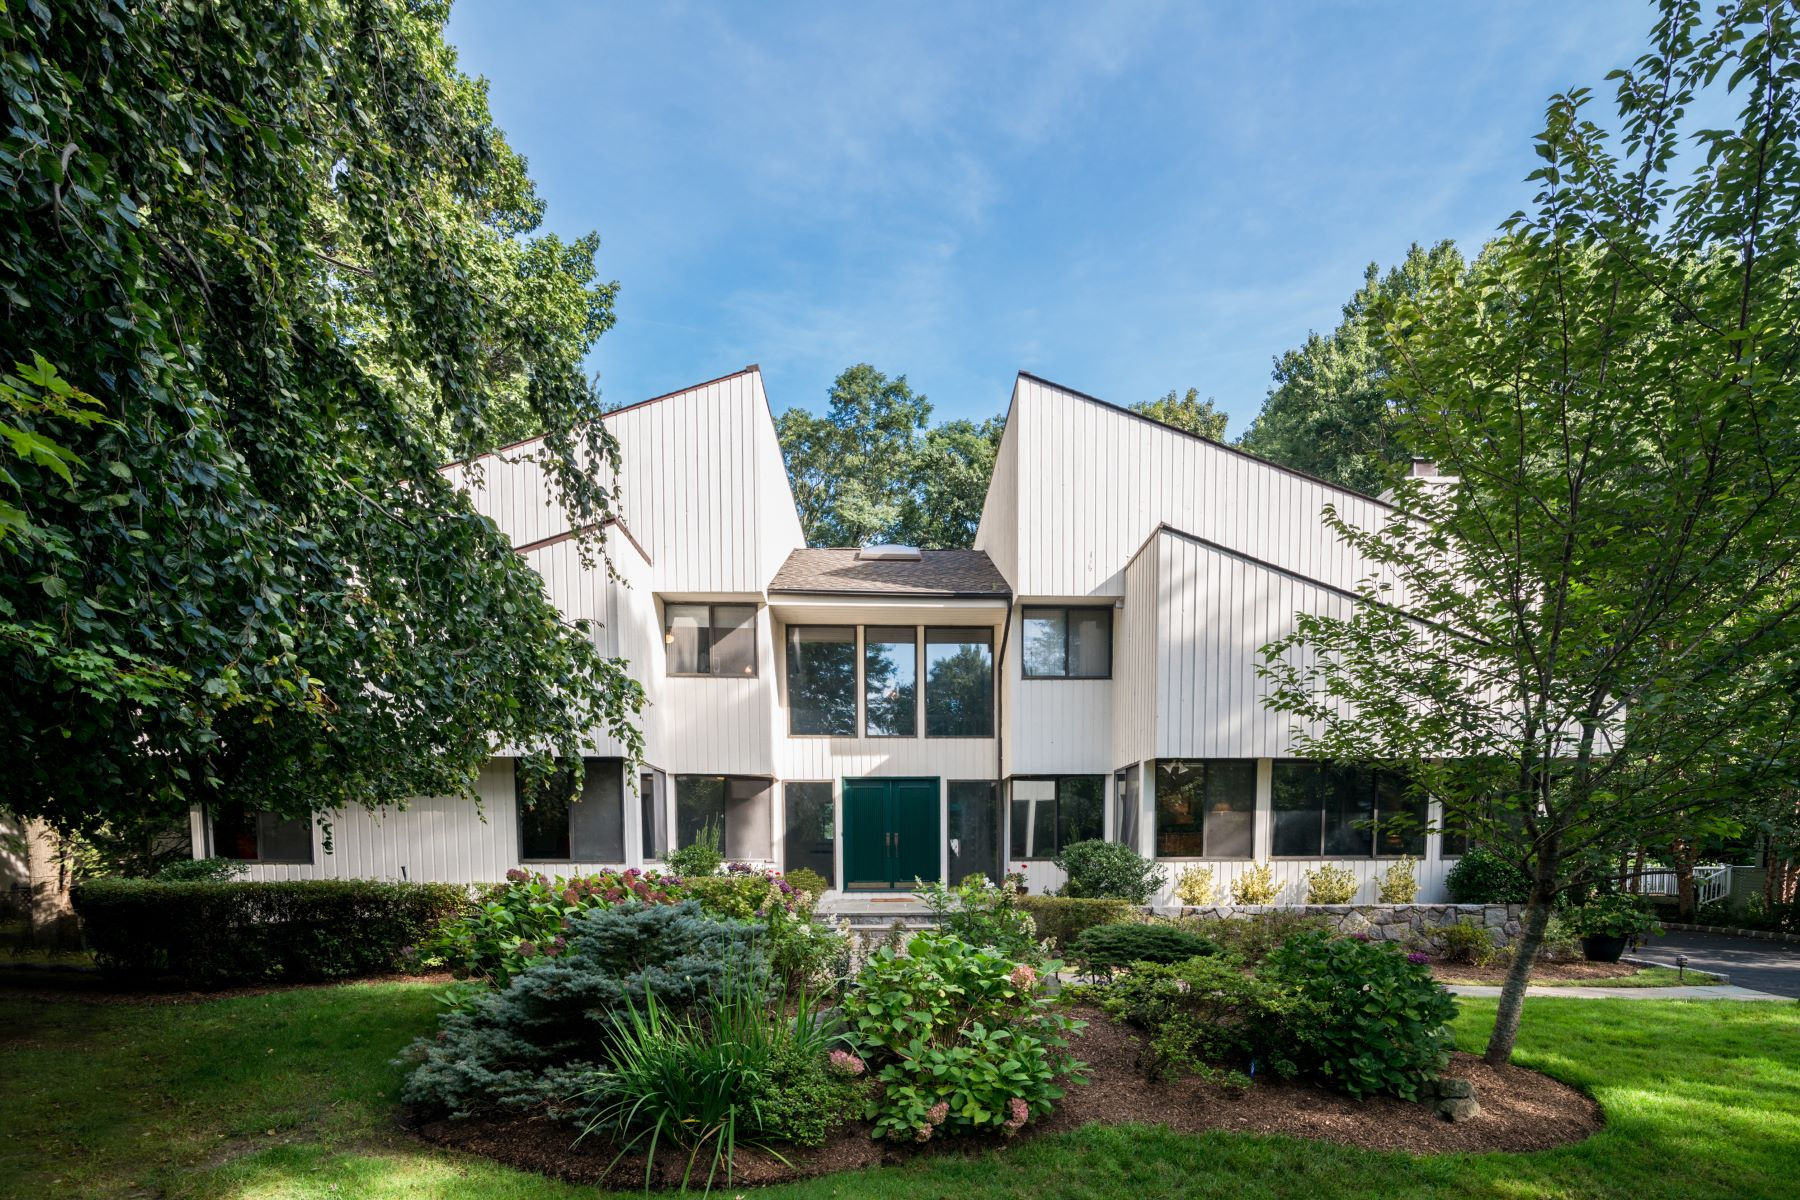 Single Family Home for Sale at 16 Ponds Lane Purchase, New York, 10577 United States